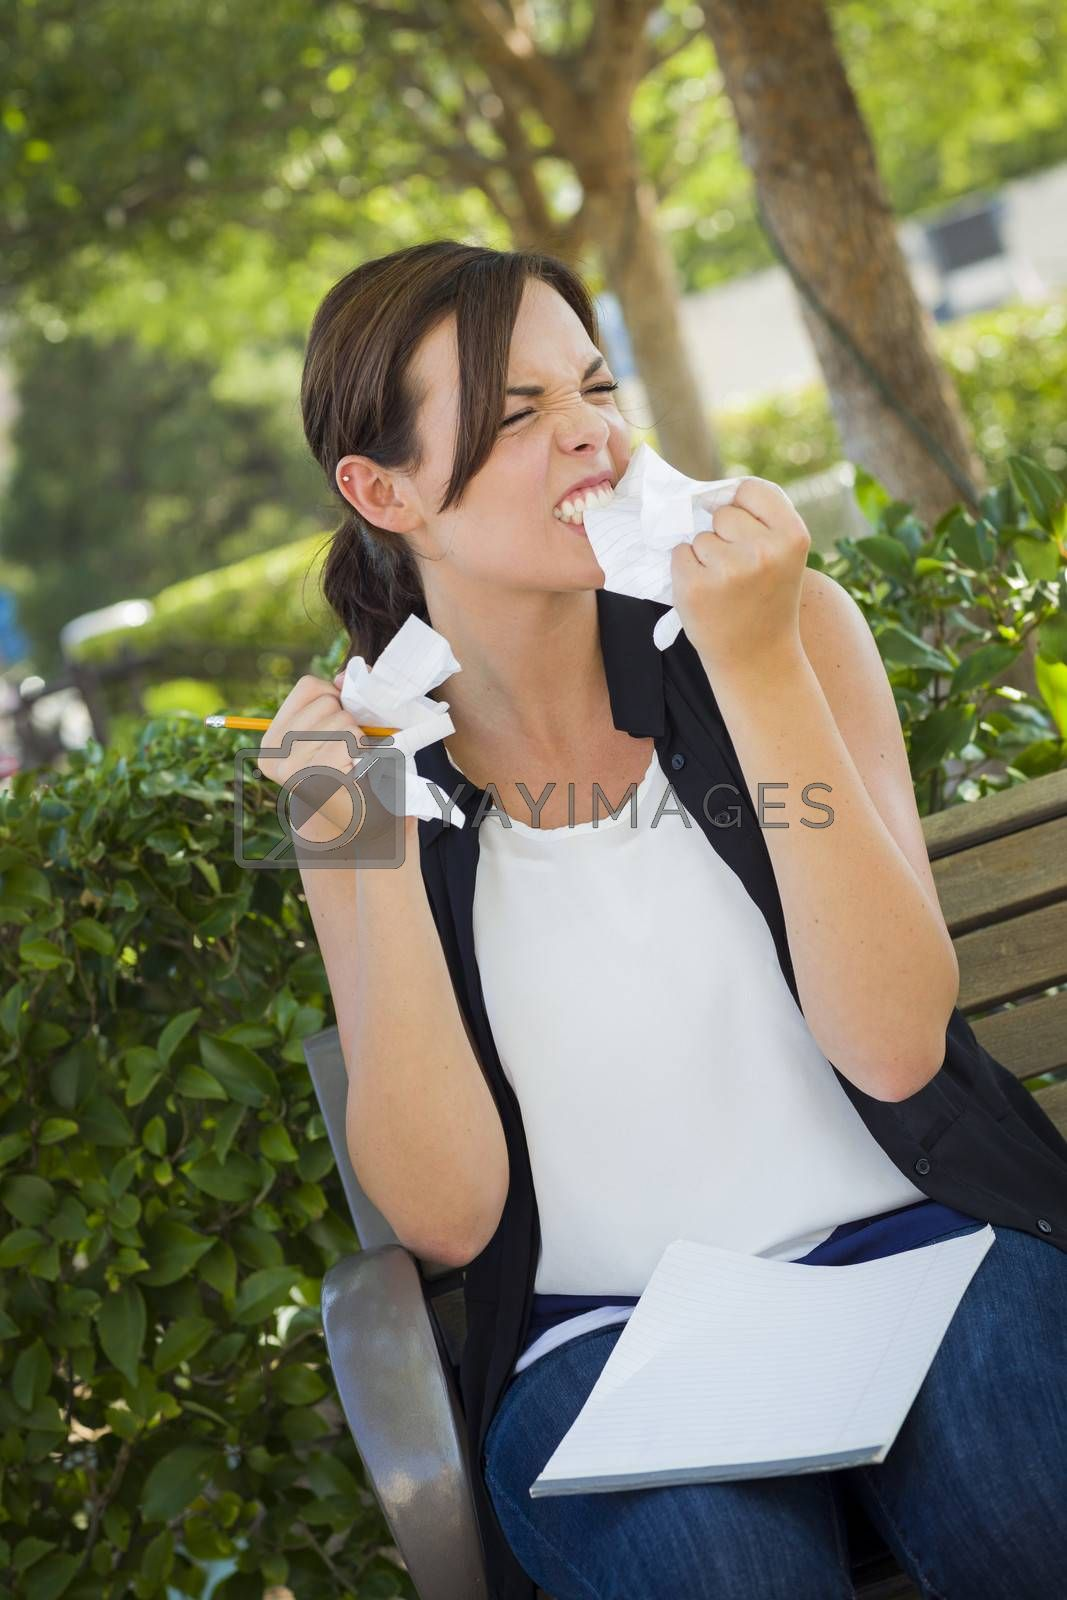 Frustrated and Upset Young Woman with Pencil and Crumpled Paper in Her Hand Sitting on Bench Outside.